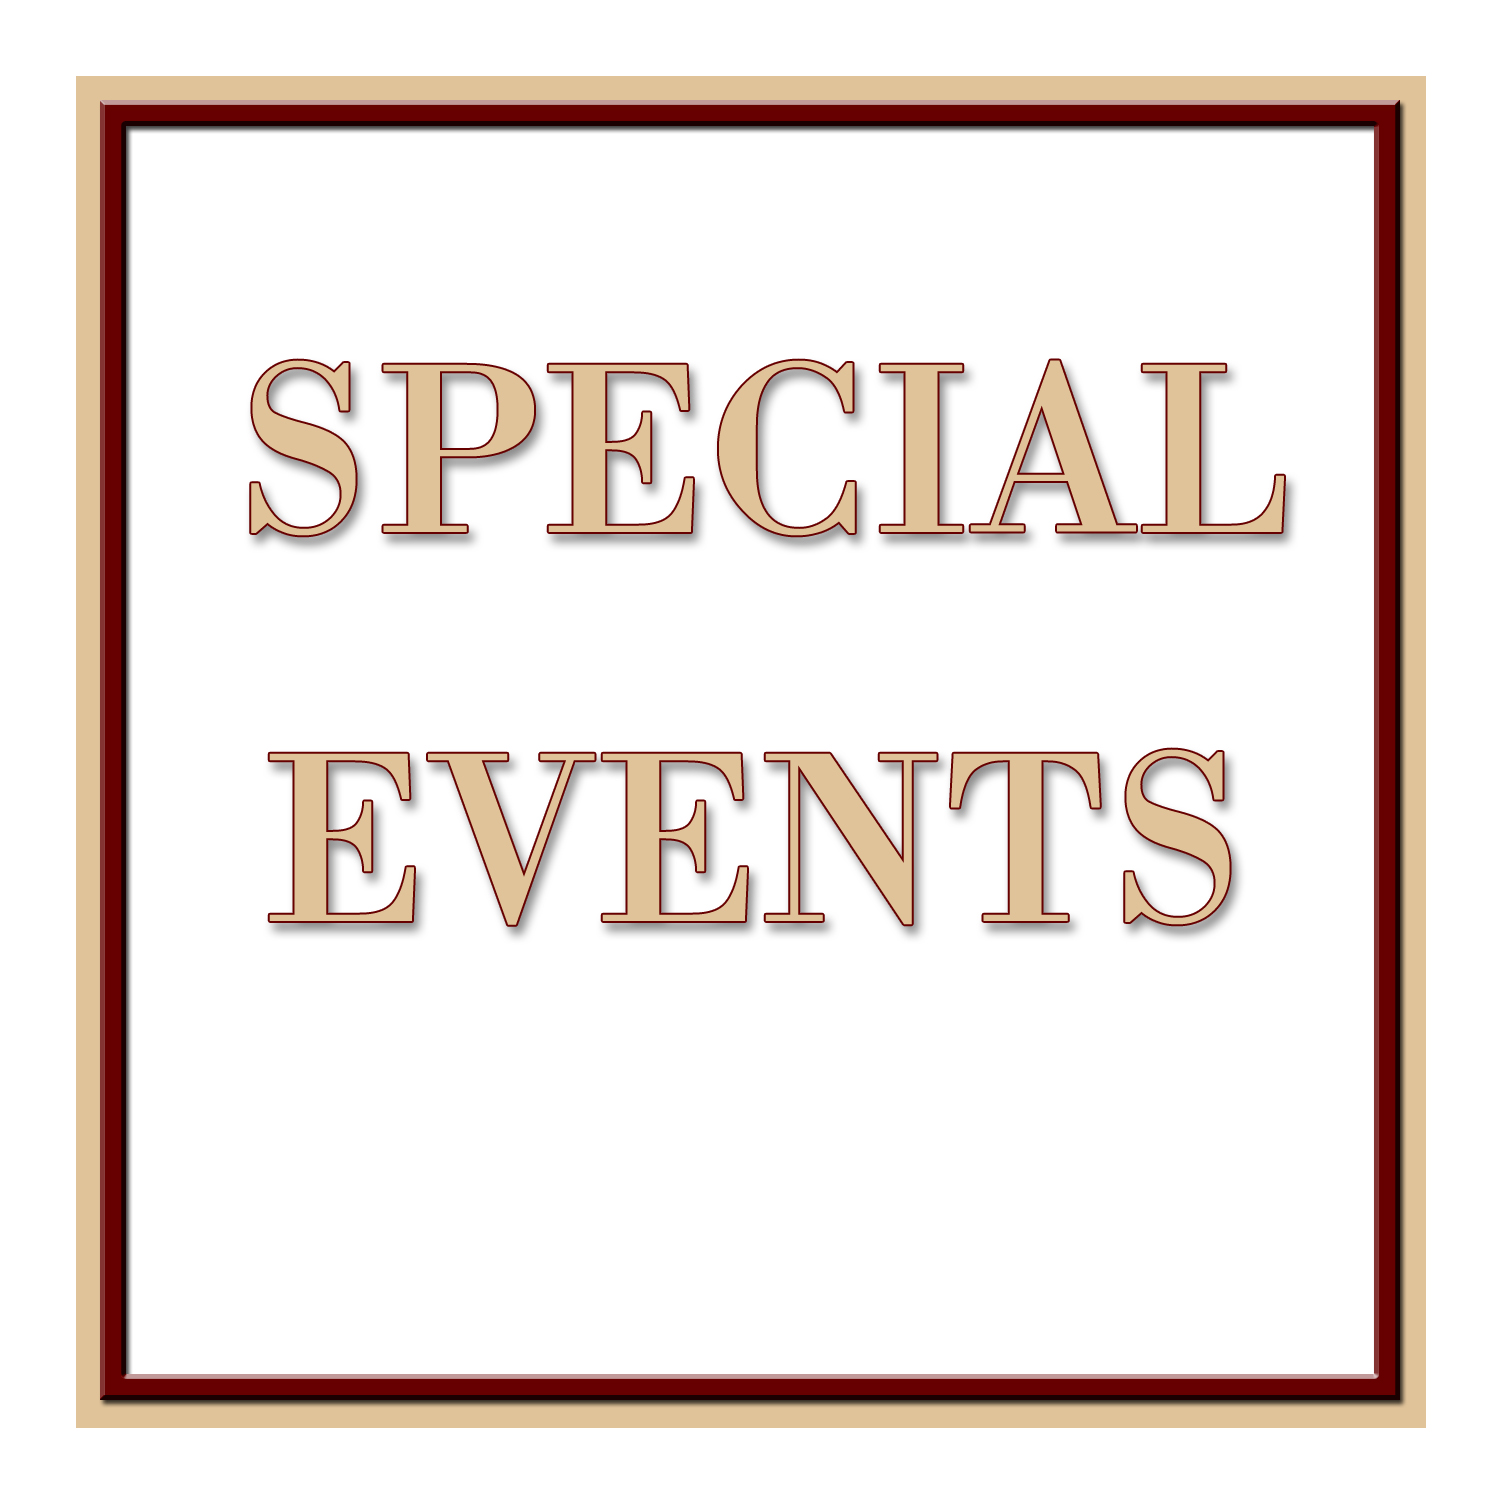 SPSM Special Events Slide tan